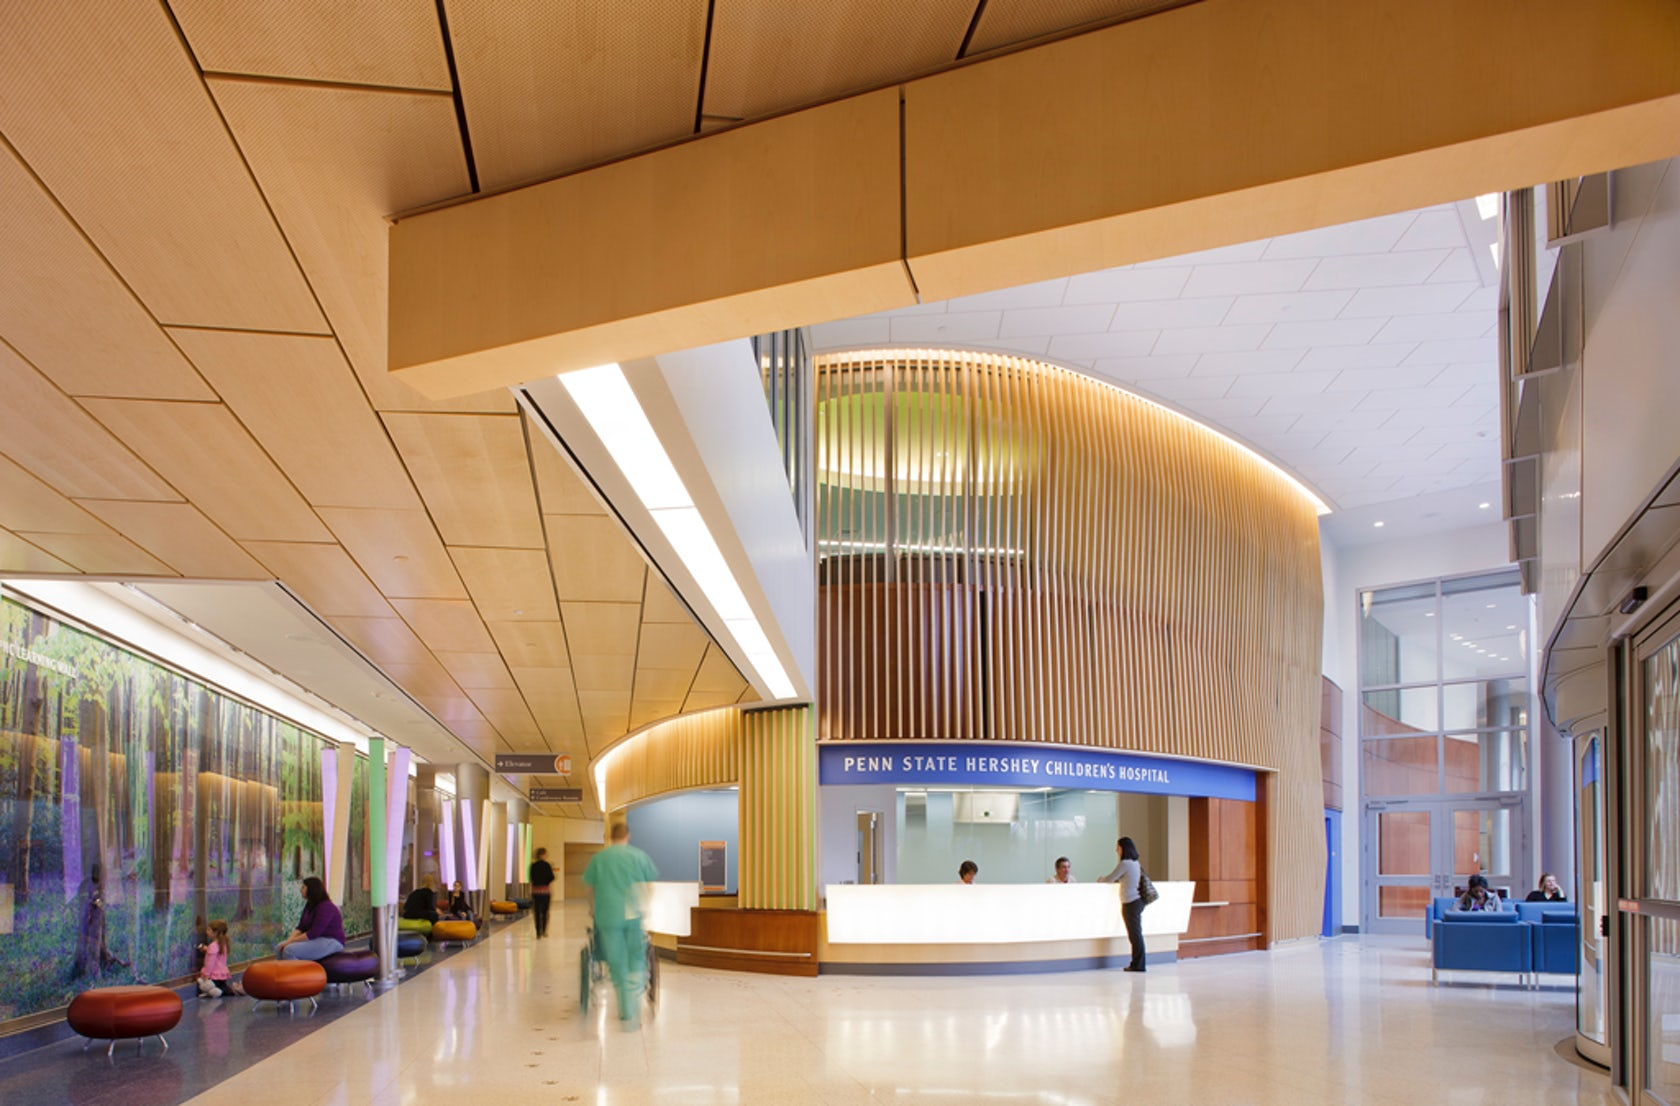 Penn state hershey children 39 s hospital architizer - Interior design jobs washington state ...